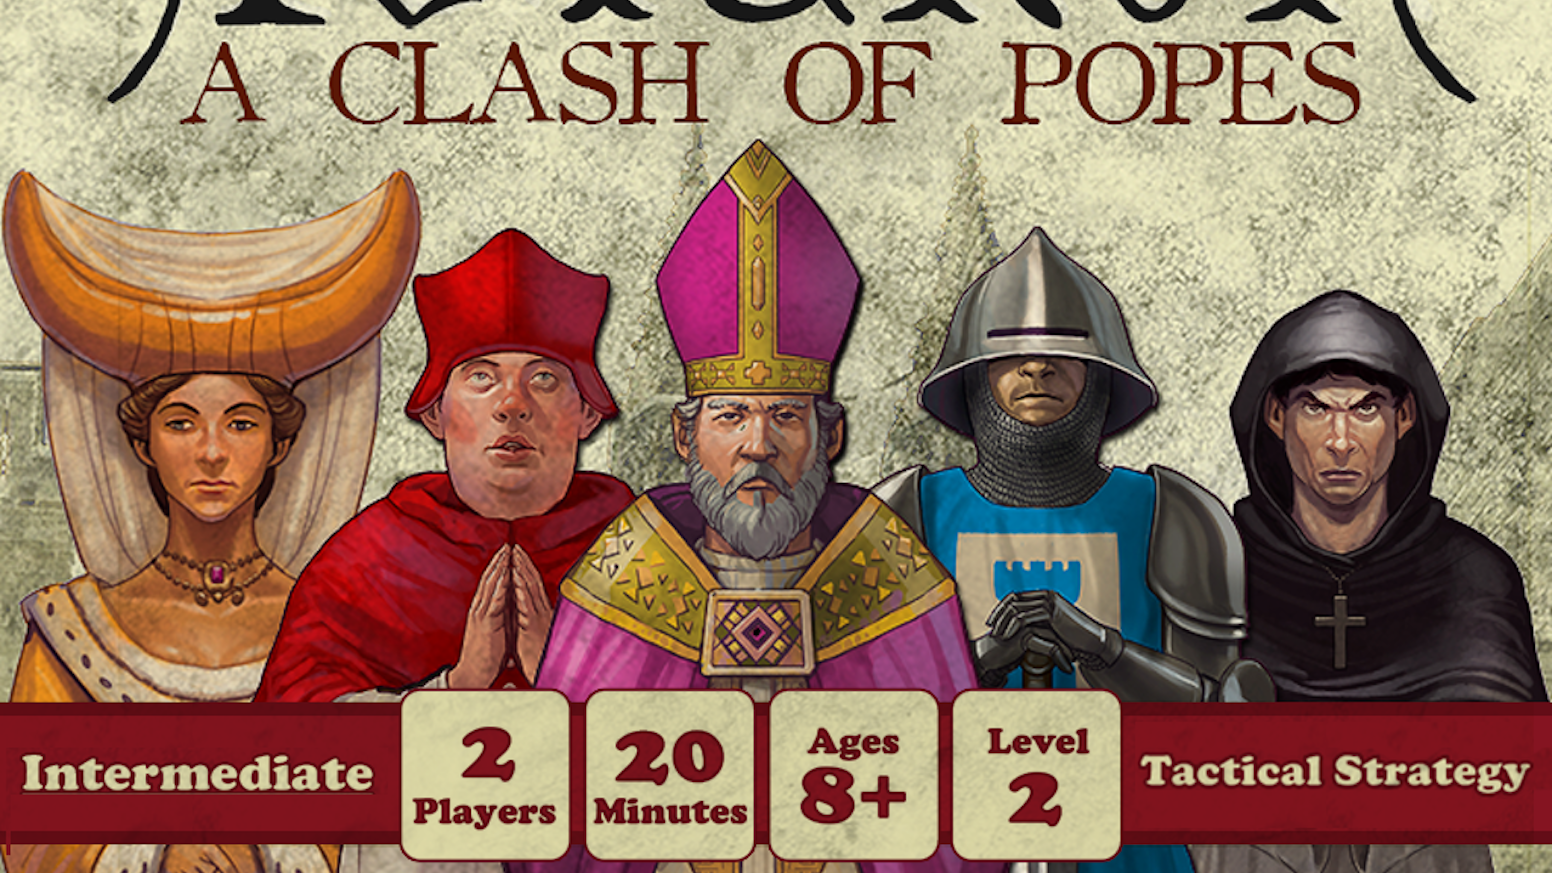 A pocket sized game of papal influence for two players. Designed by John du Bois with illustrations by Fabrice Weiss. If you missed out, pre-order below.